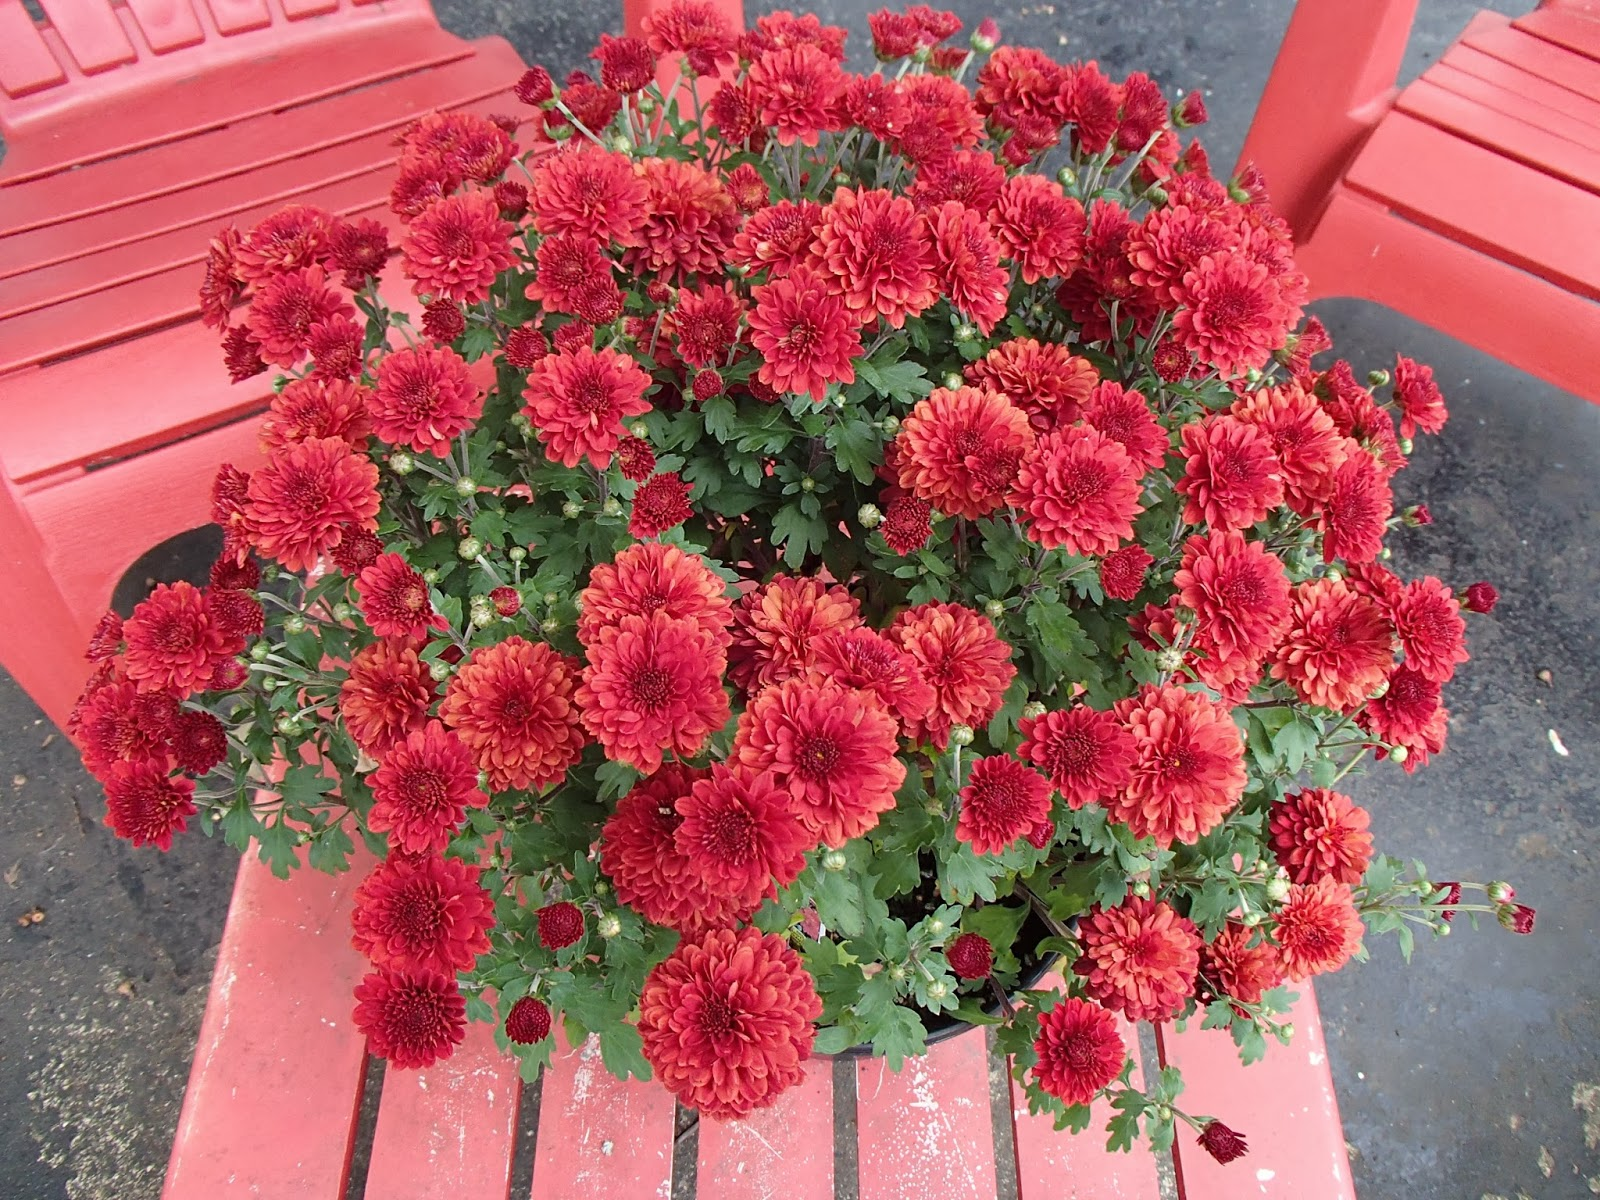 Wine colored mums on the porch | Navigating Hectivity by Micki Bare